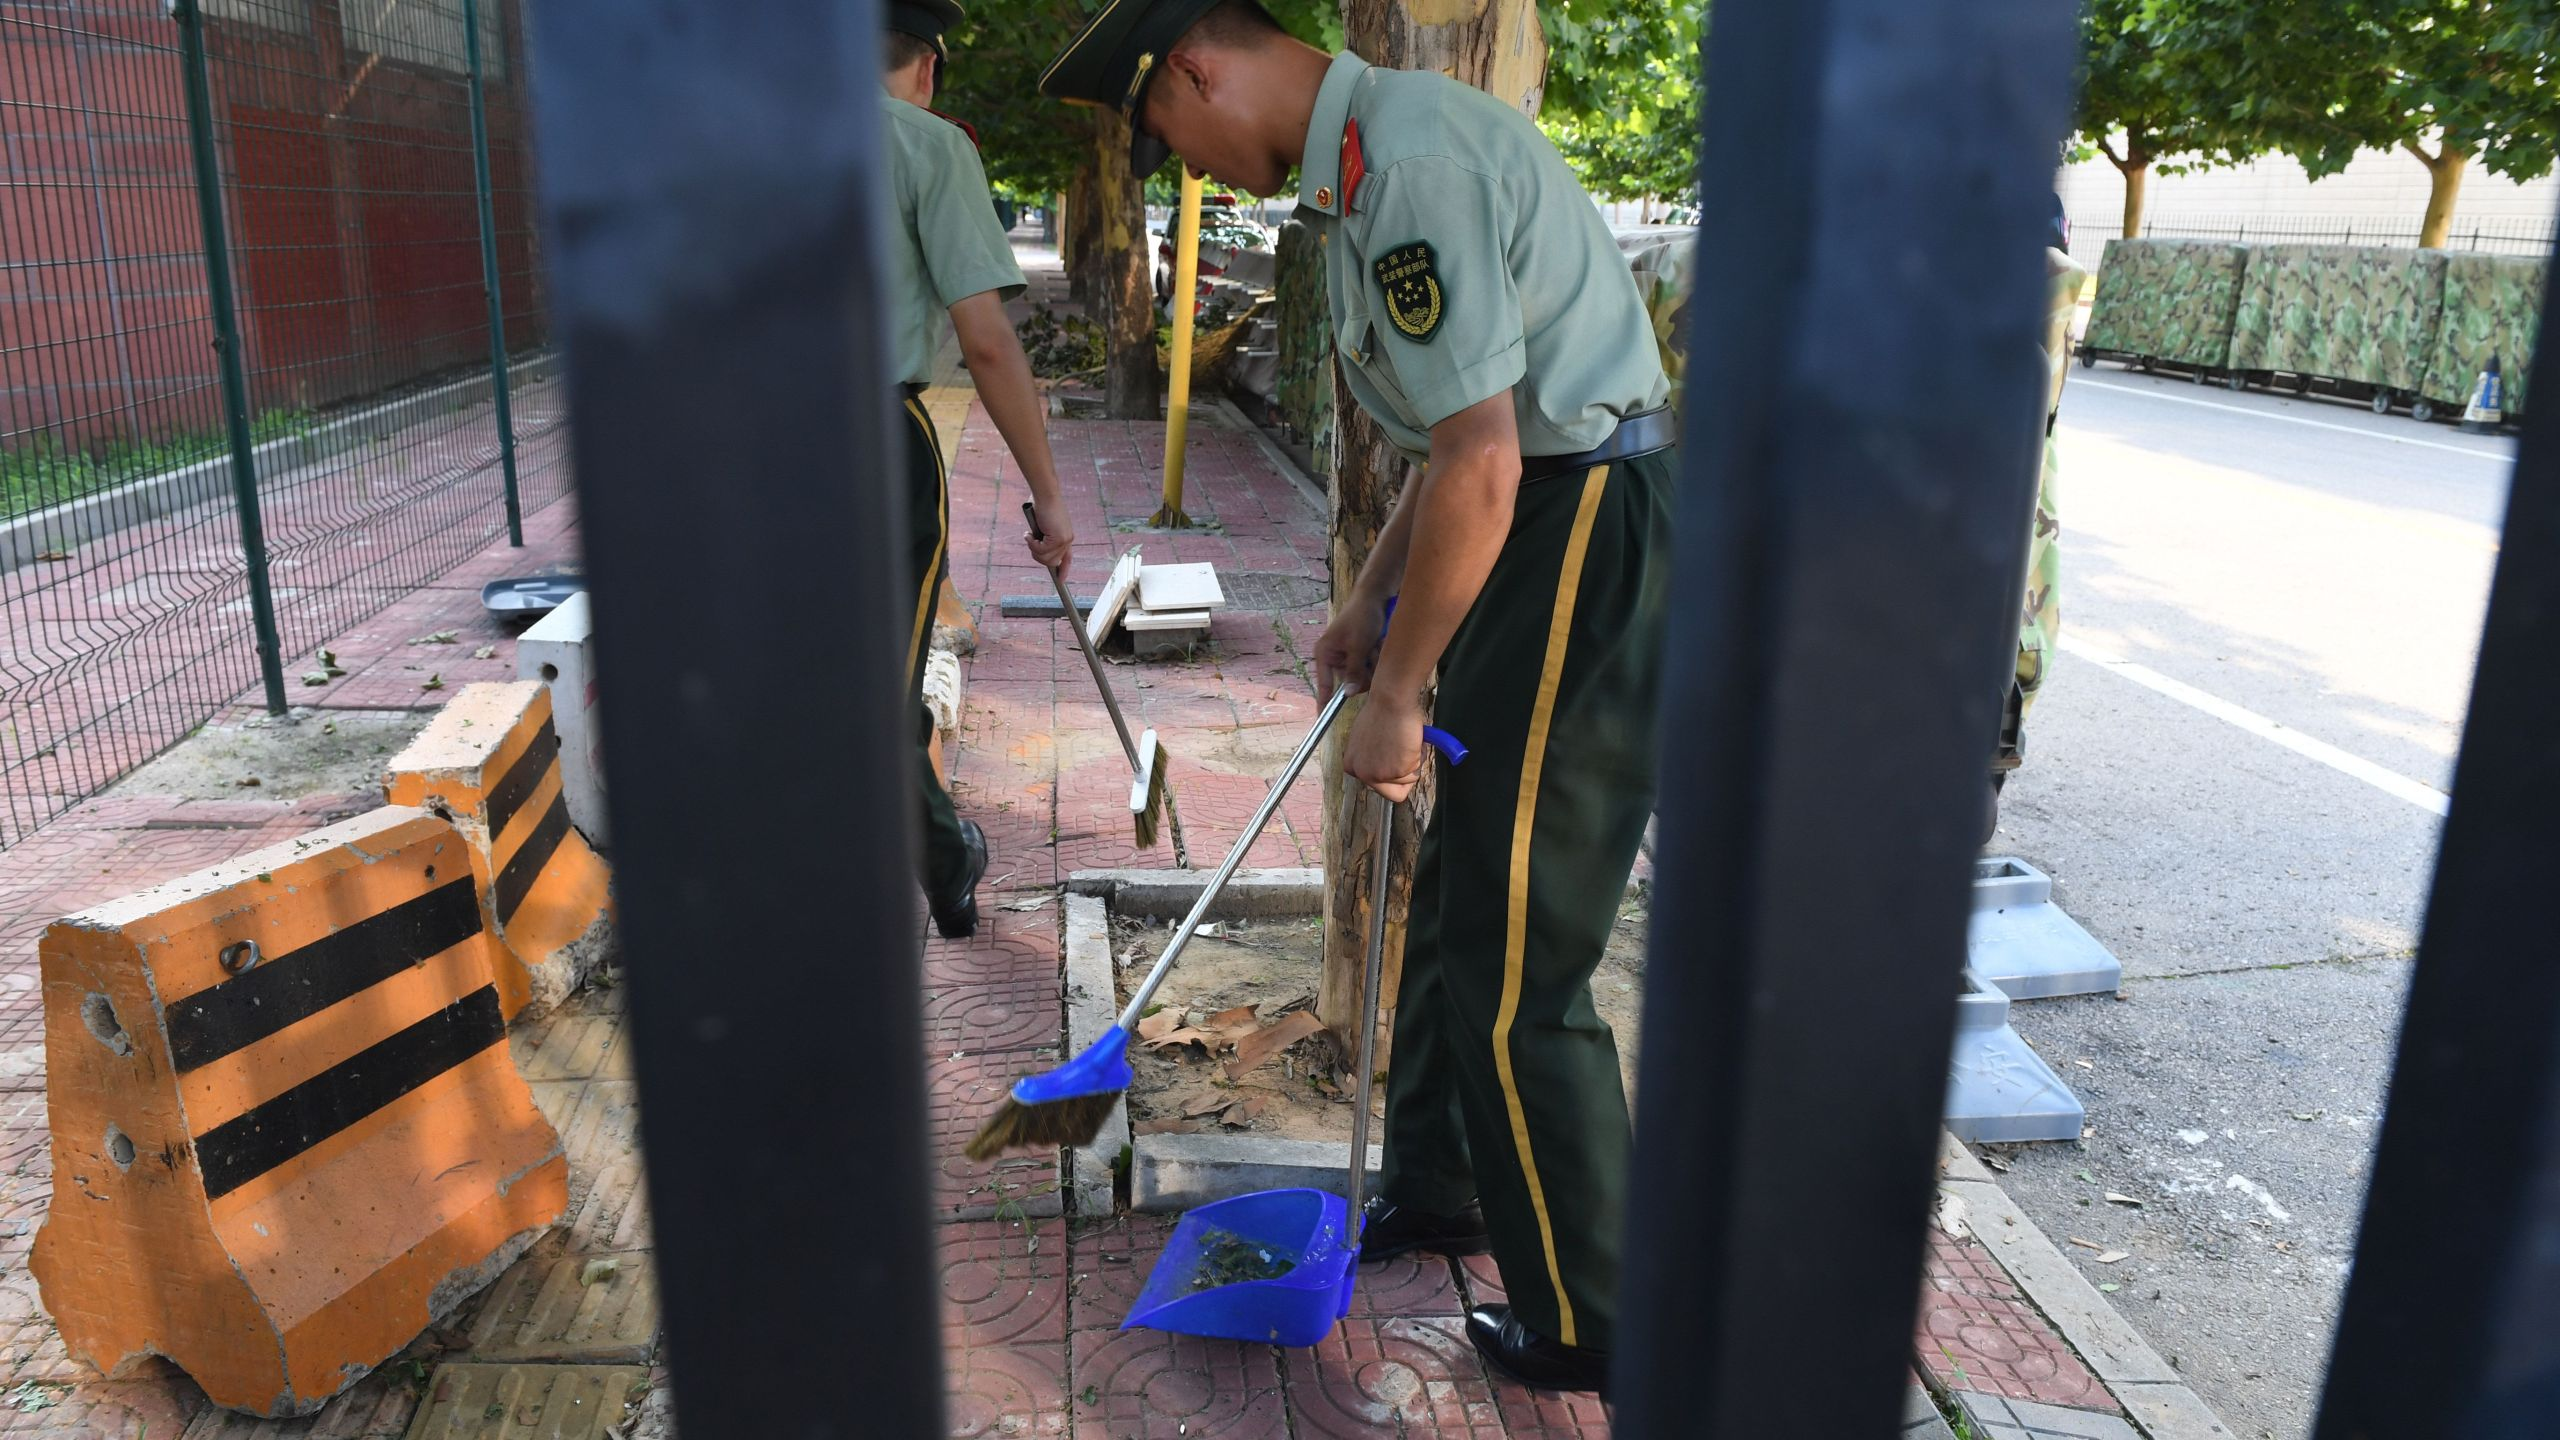 Chinese paramilitary police clean up broken glass and debris outside the US embassy compound in Beijing on July 26, 2018 following a blast near the embassy premises. (Credit: GREG BAKER/AFP/Getty Images)